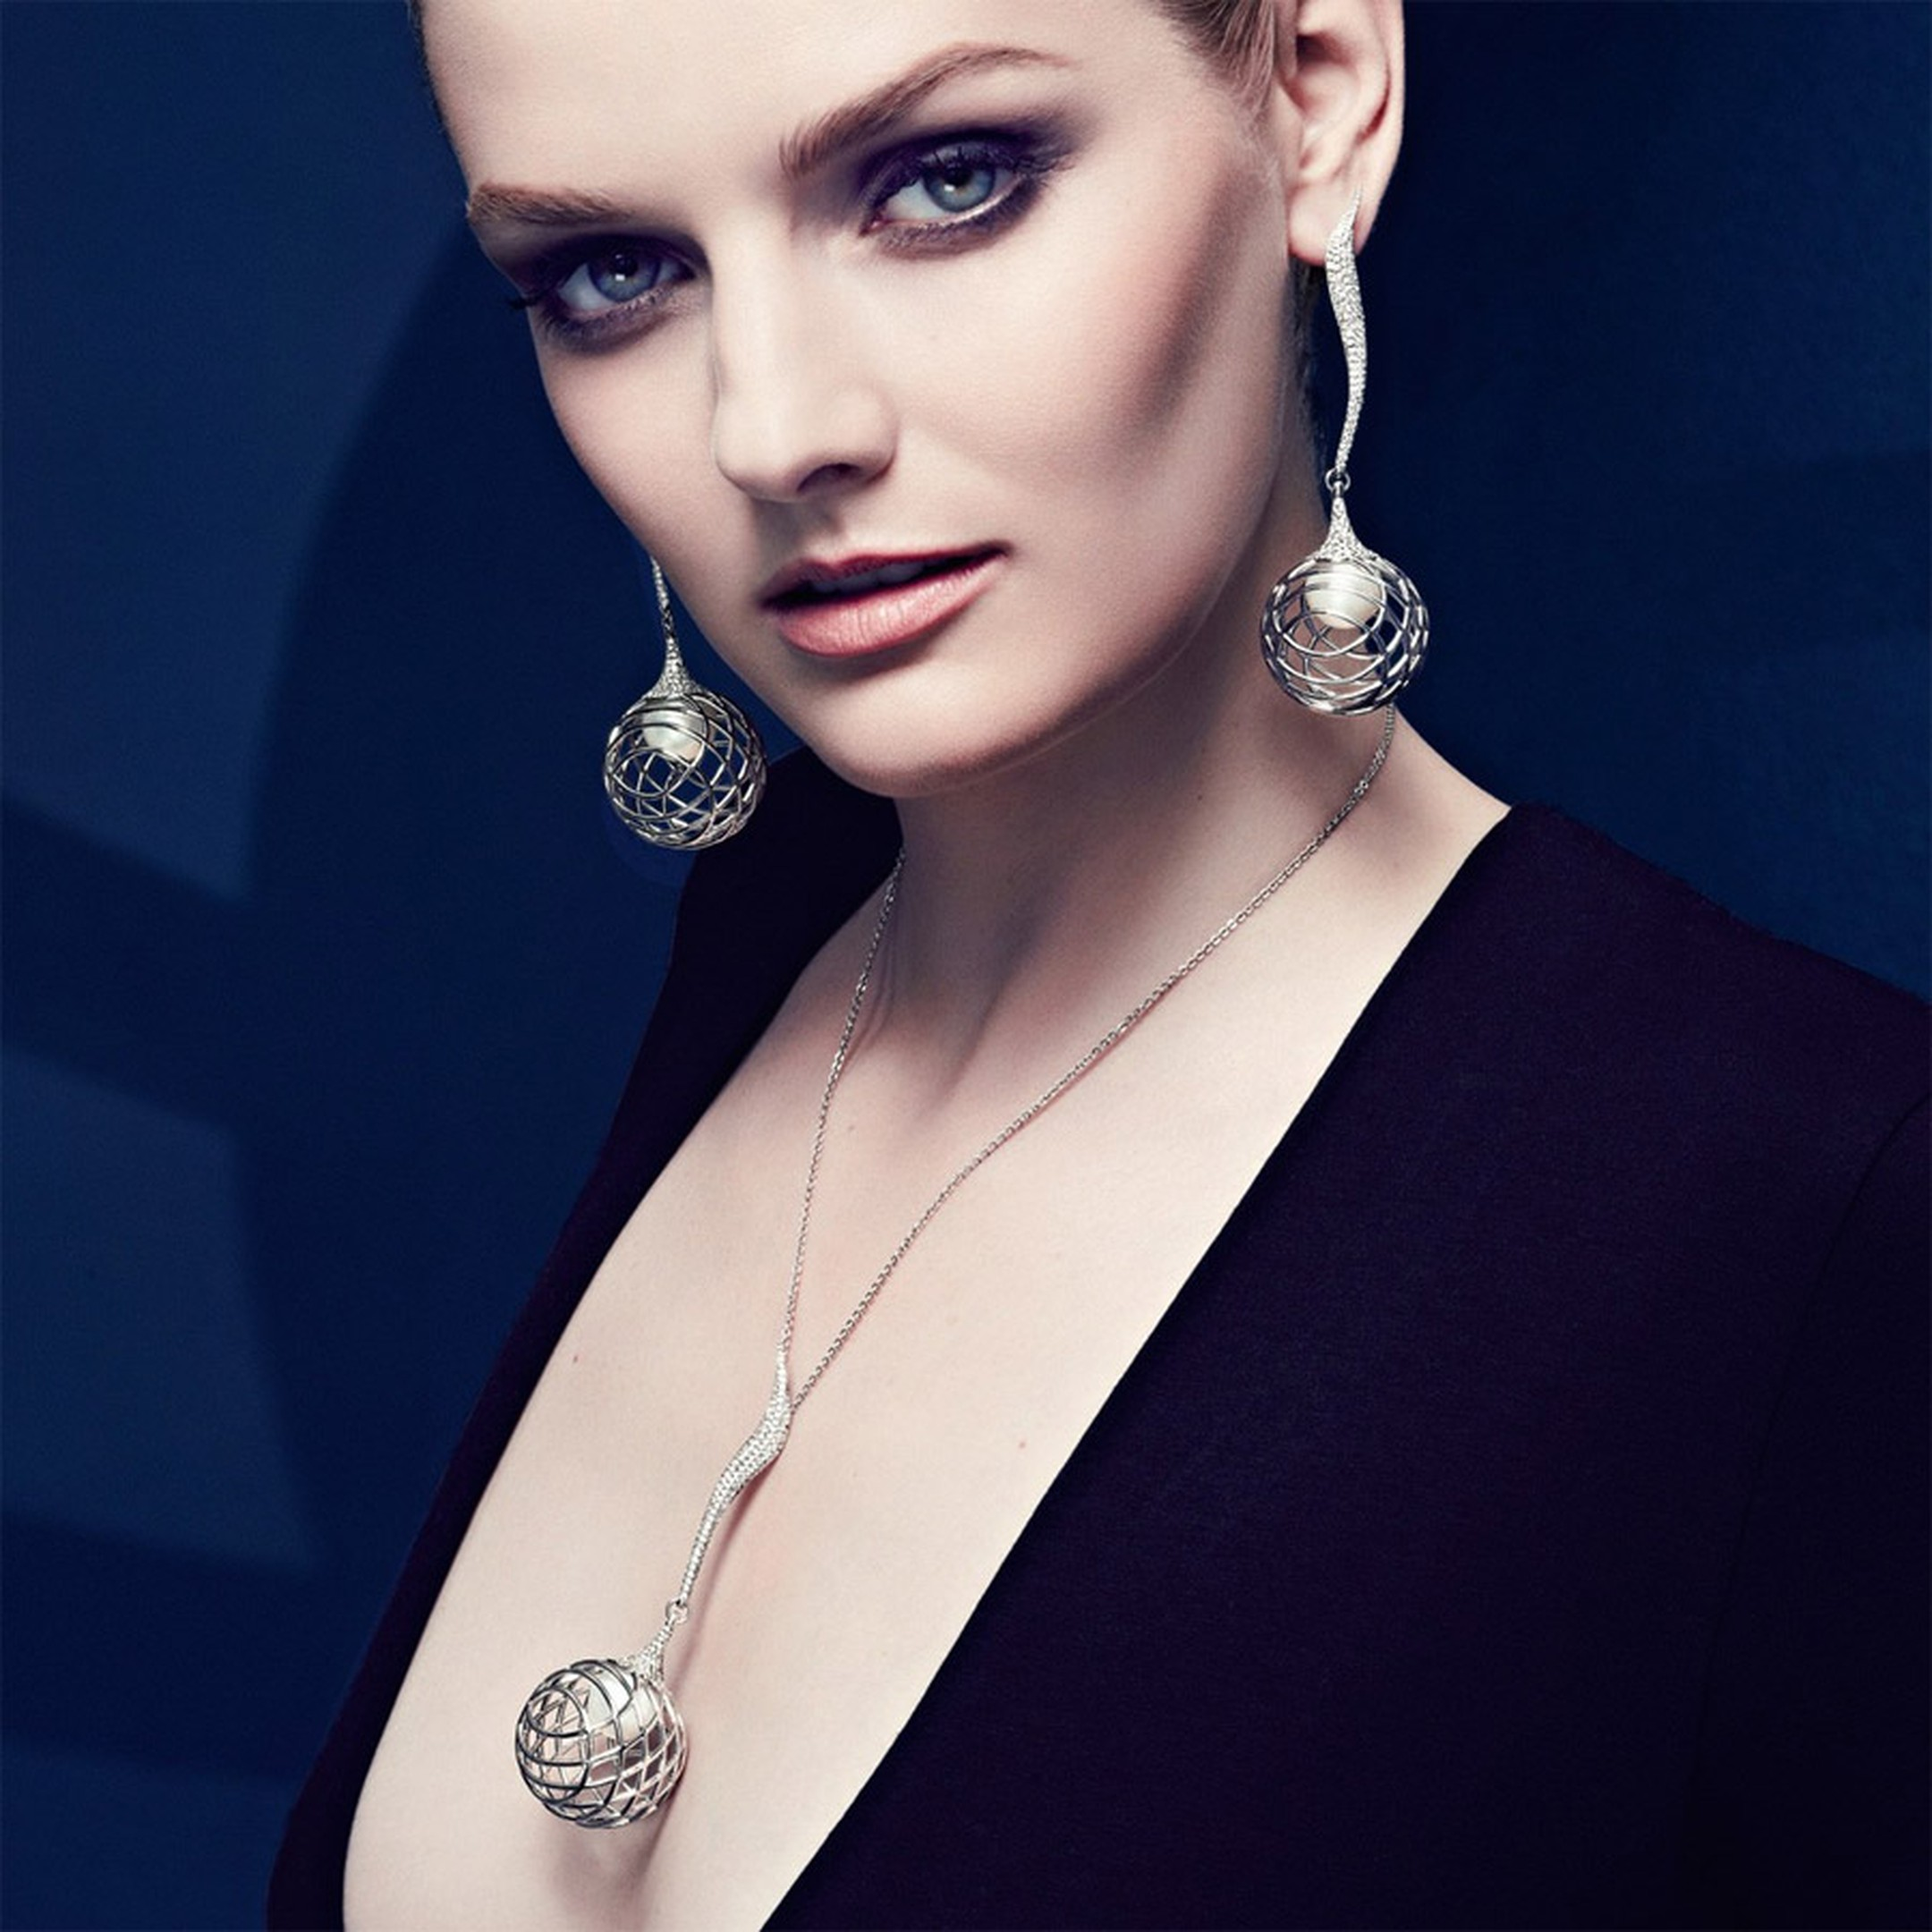 The-Palladium-Fine-Jewellery-Lara-Bohinc-Model-1